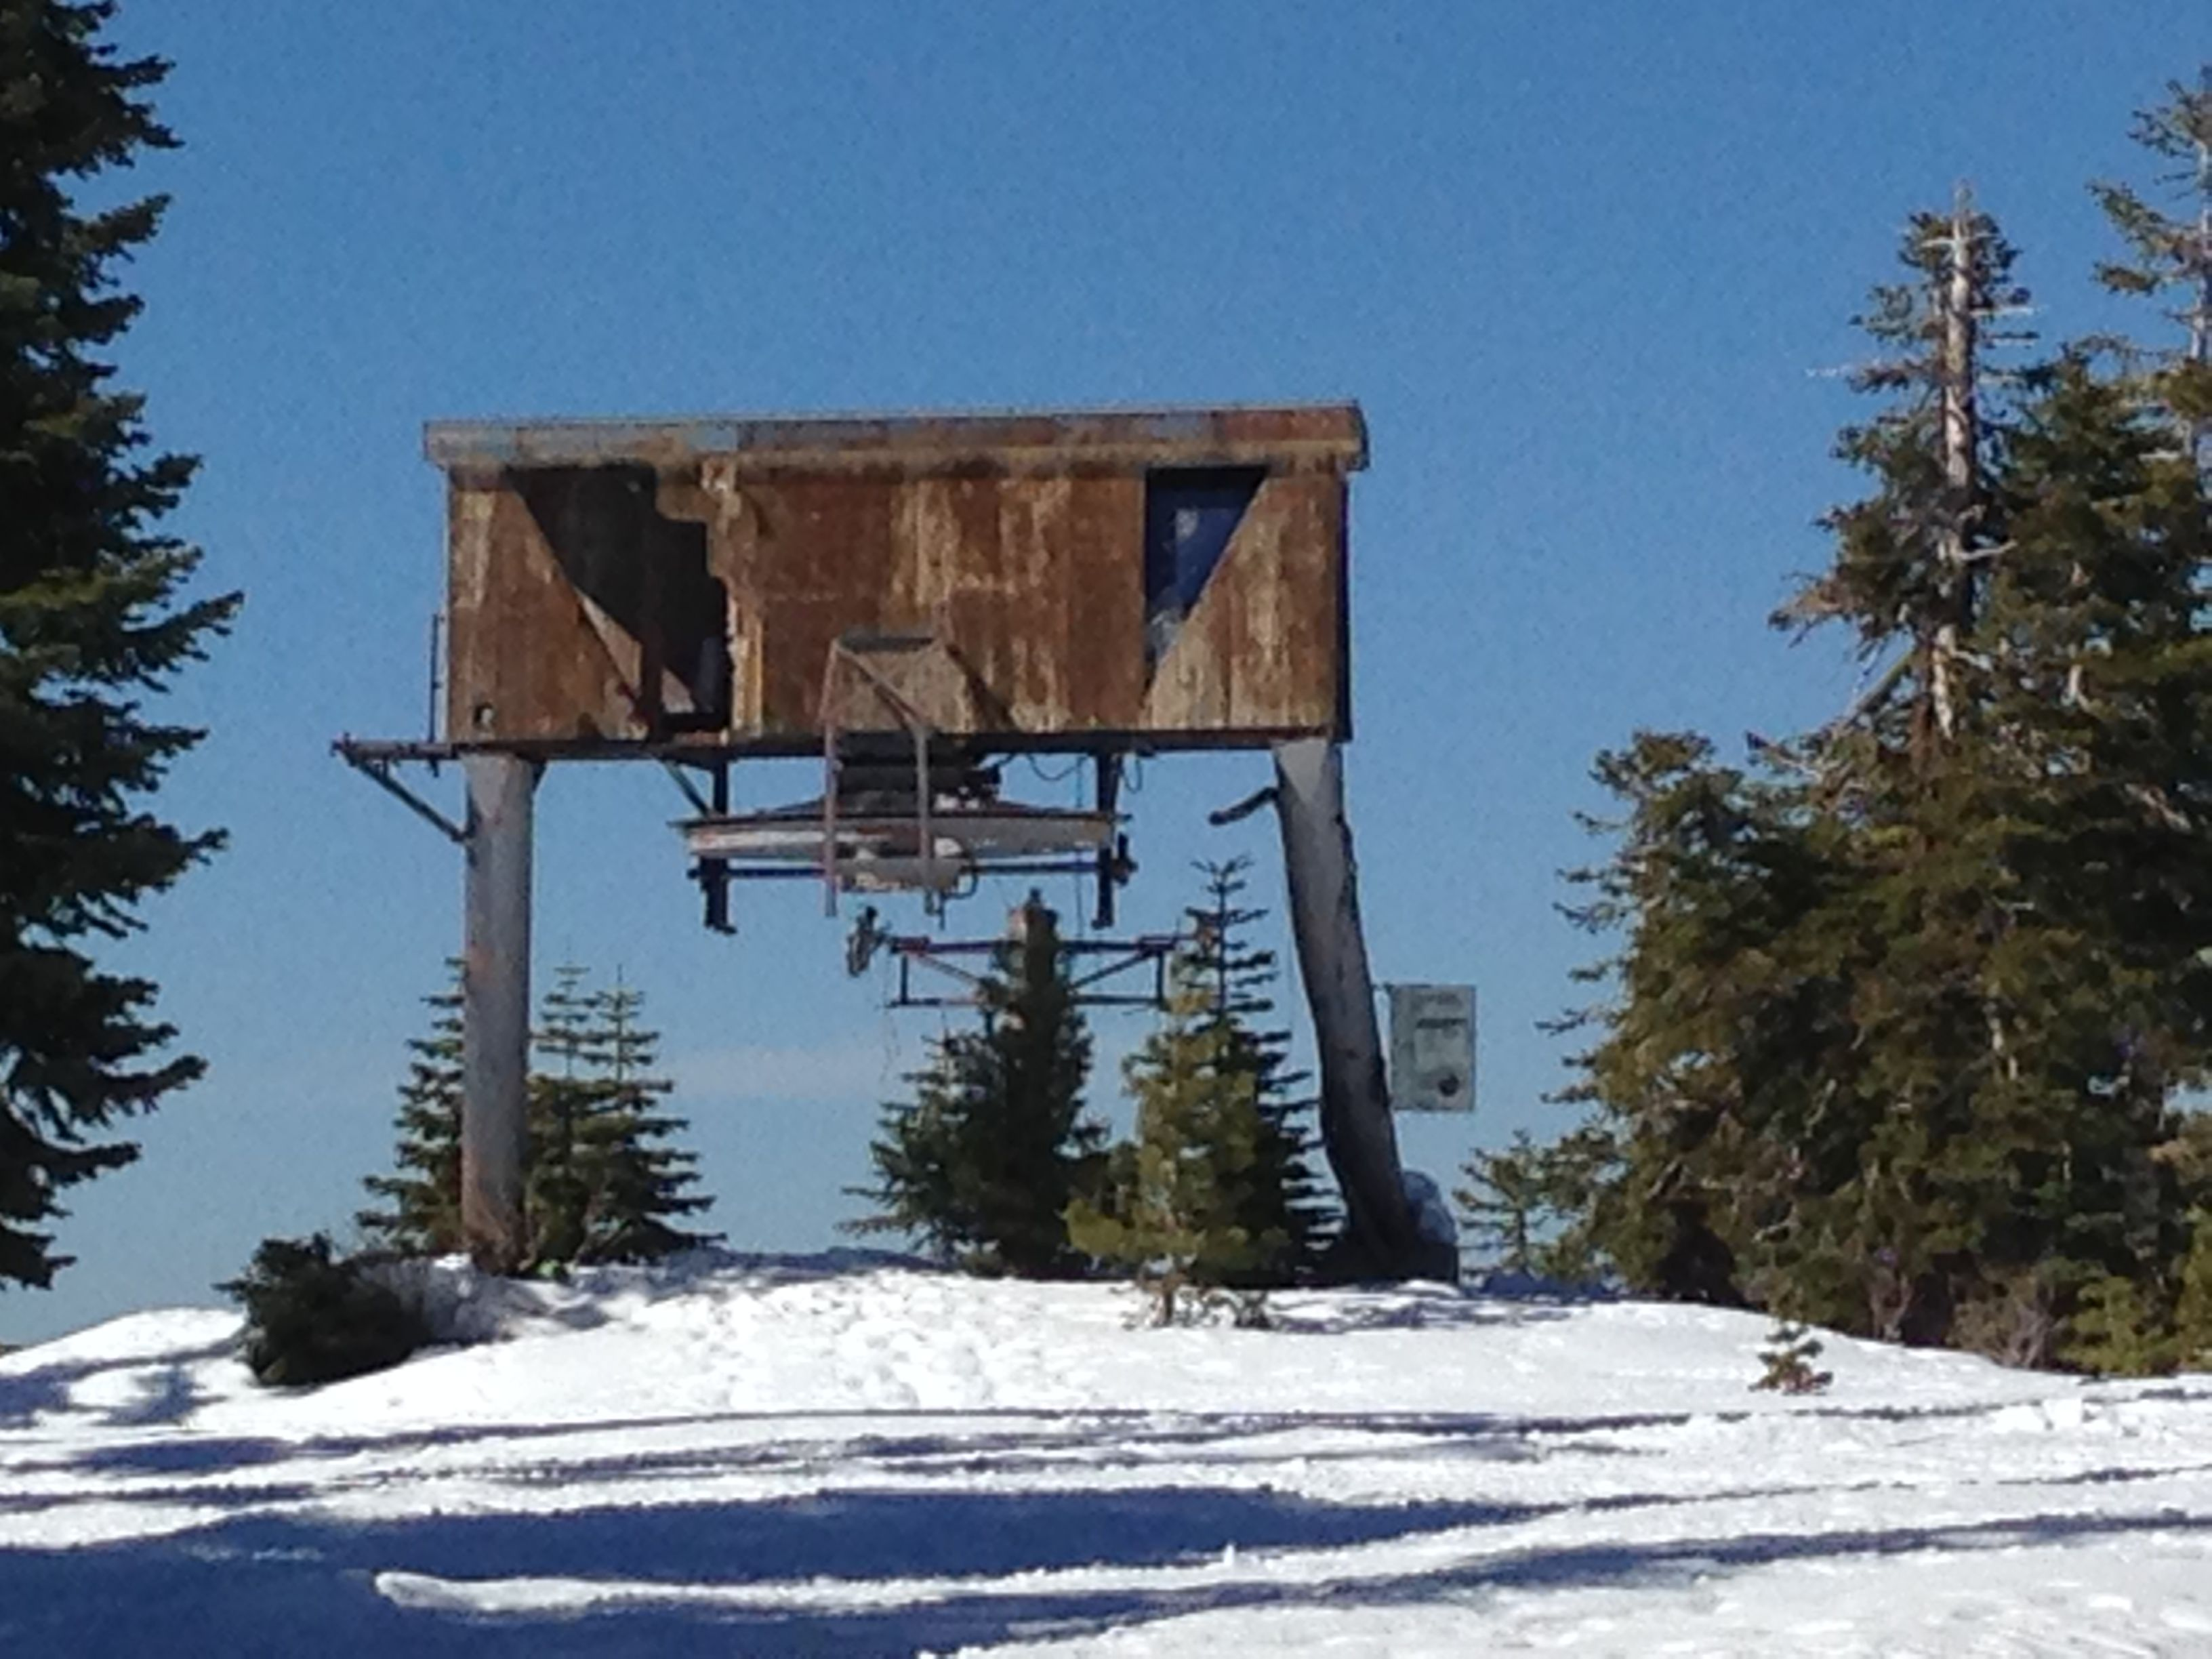 pin by dave petersen /midwestpete on abandoned ski areas | abandoned